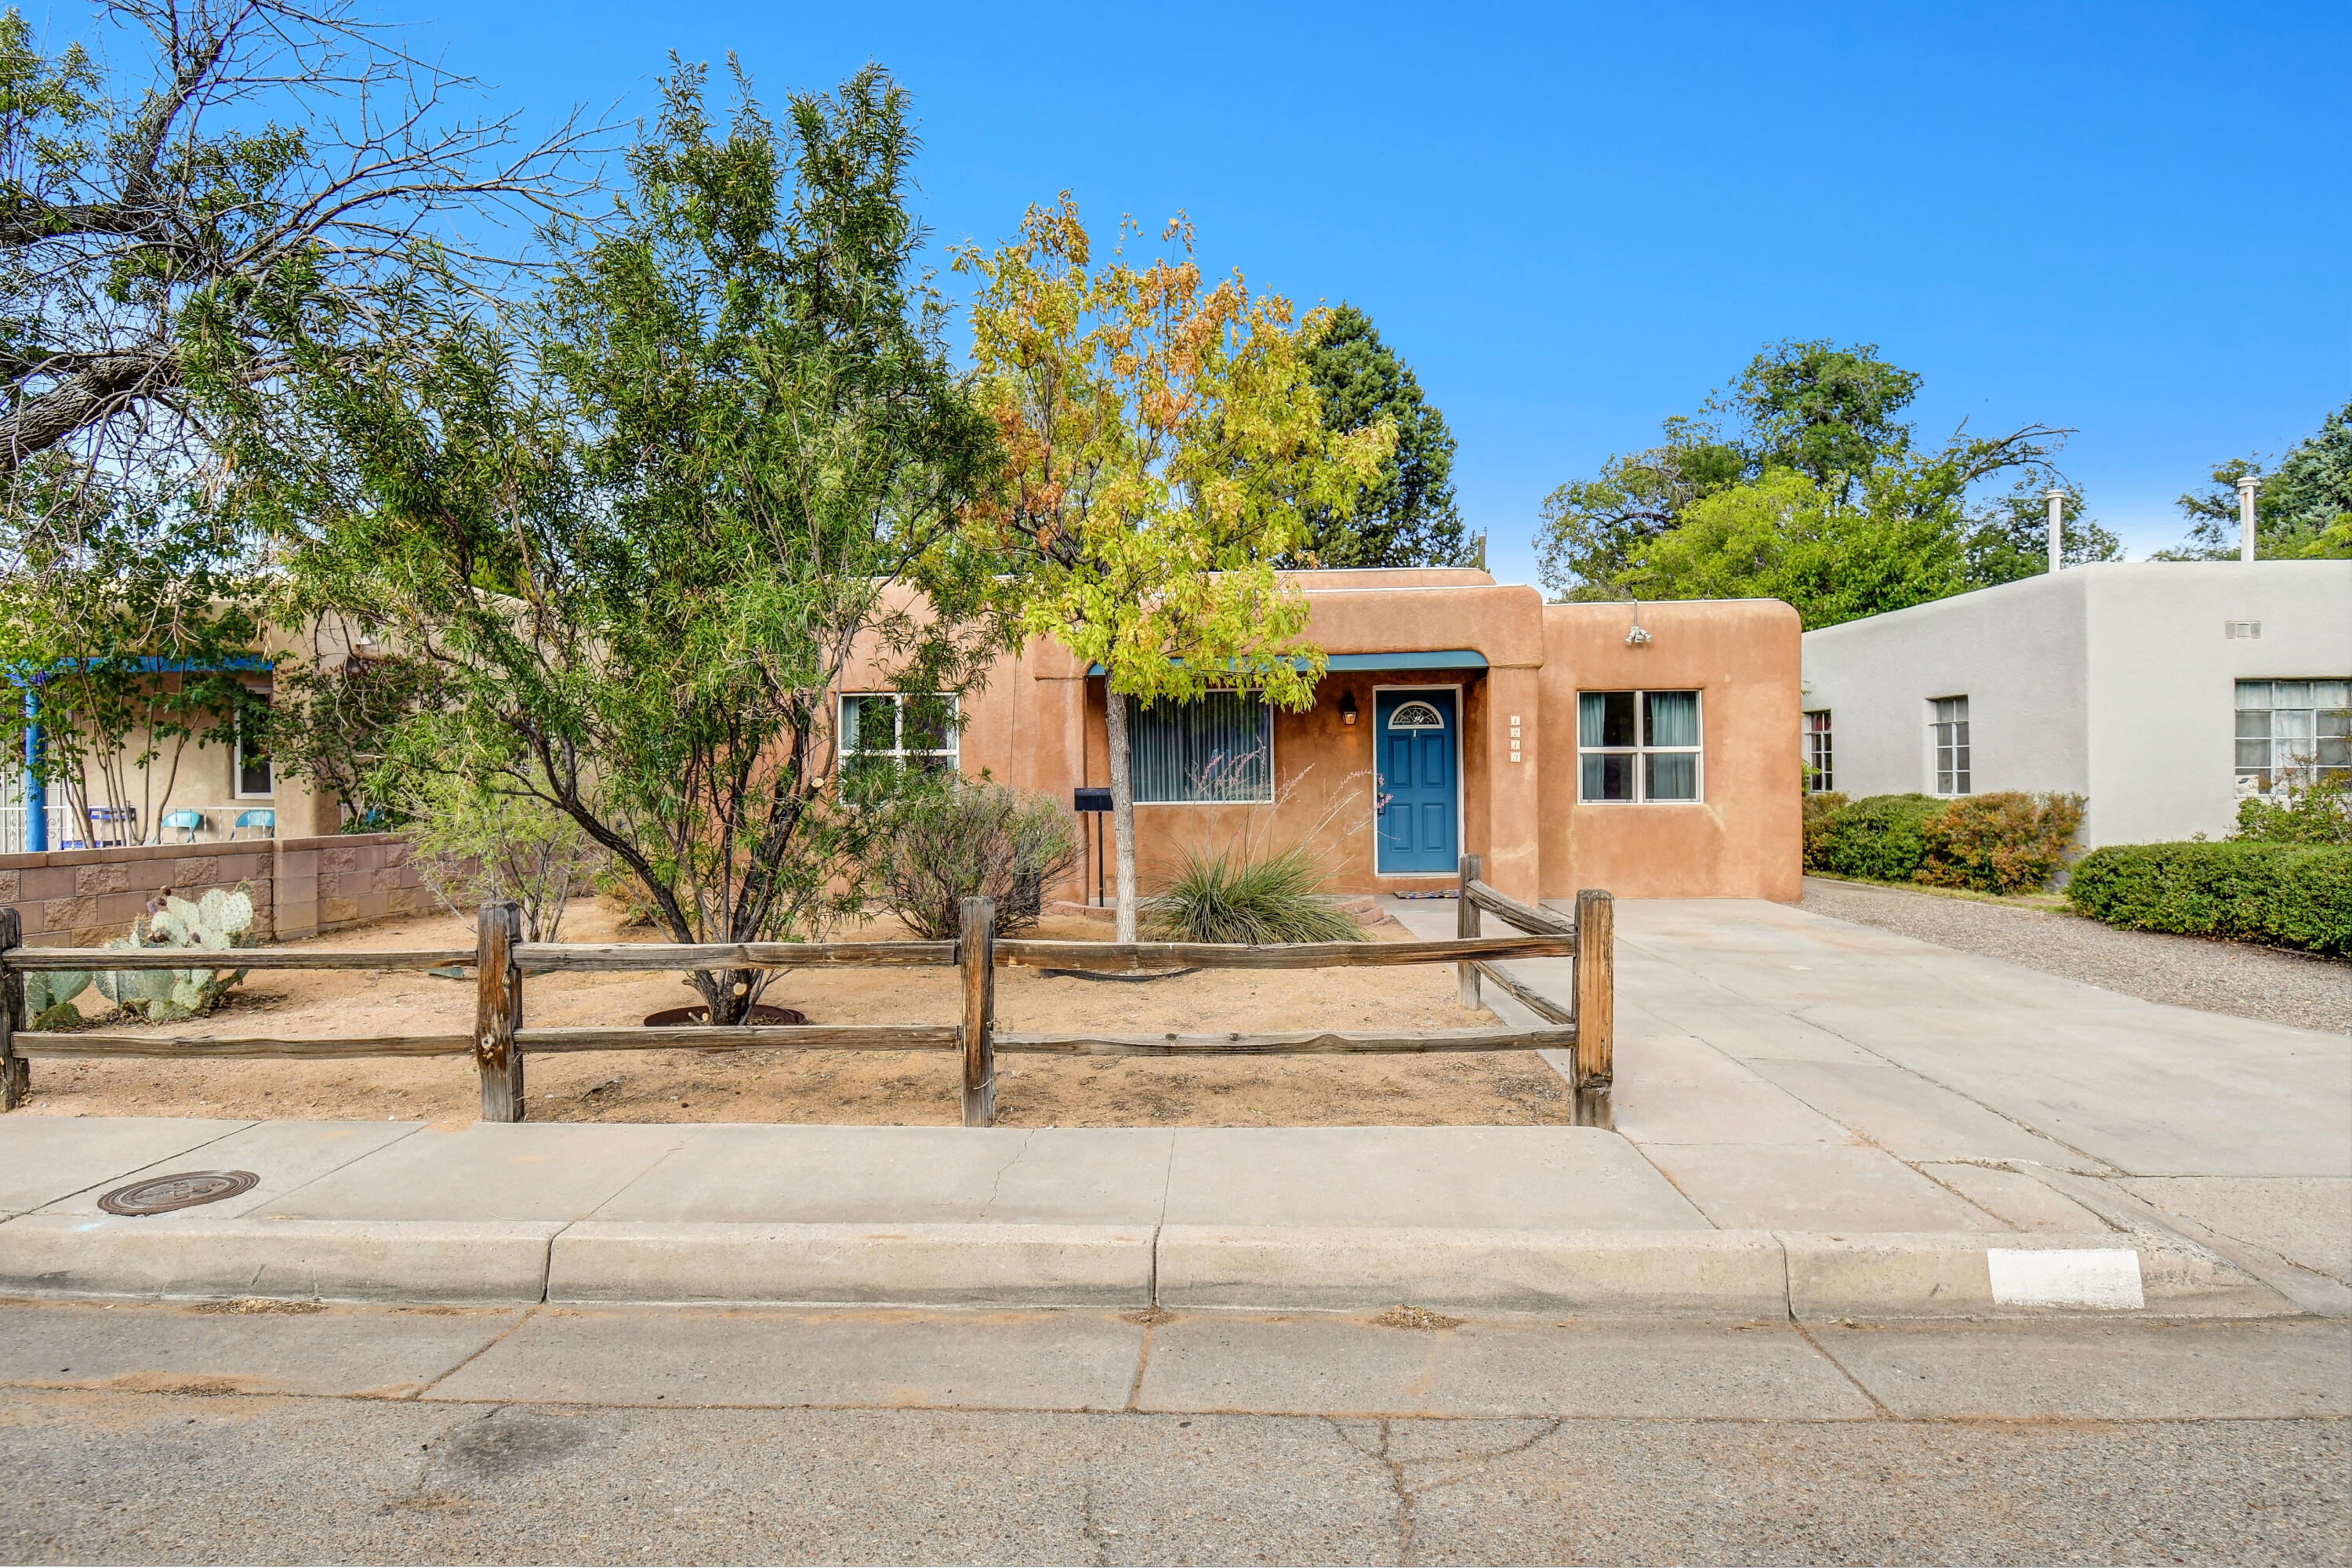 Check out this fabulous North-Campus University Area gem, close to restaurants and local parks. You get 2 living areas, 3 bedrooms, and a separate laundry room. Cute fenced-in backyard with lots of potential.